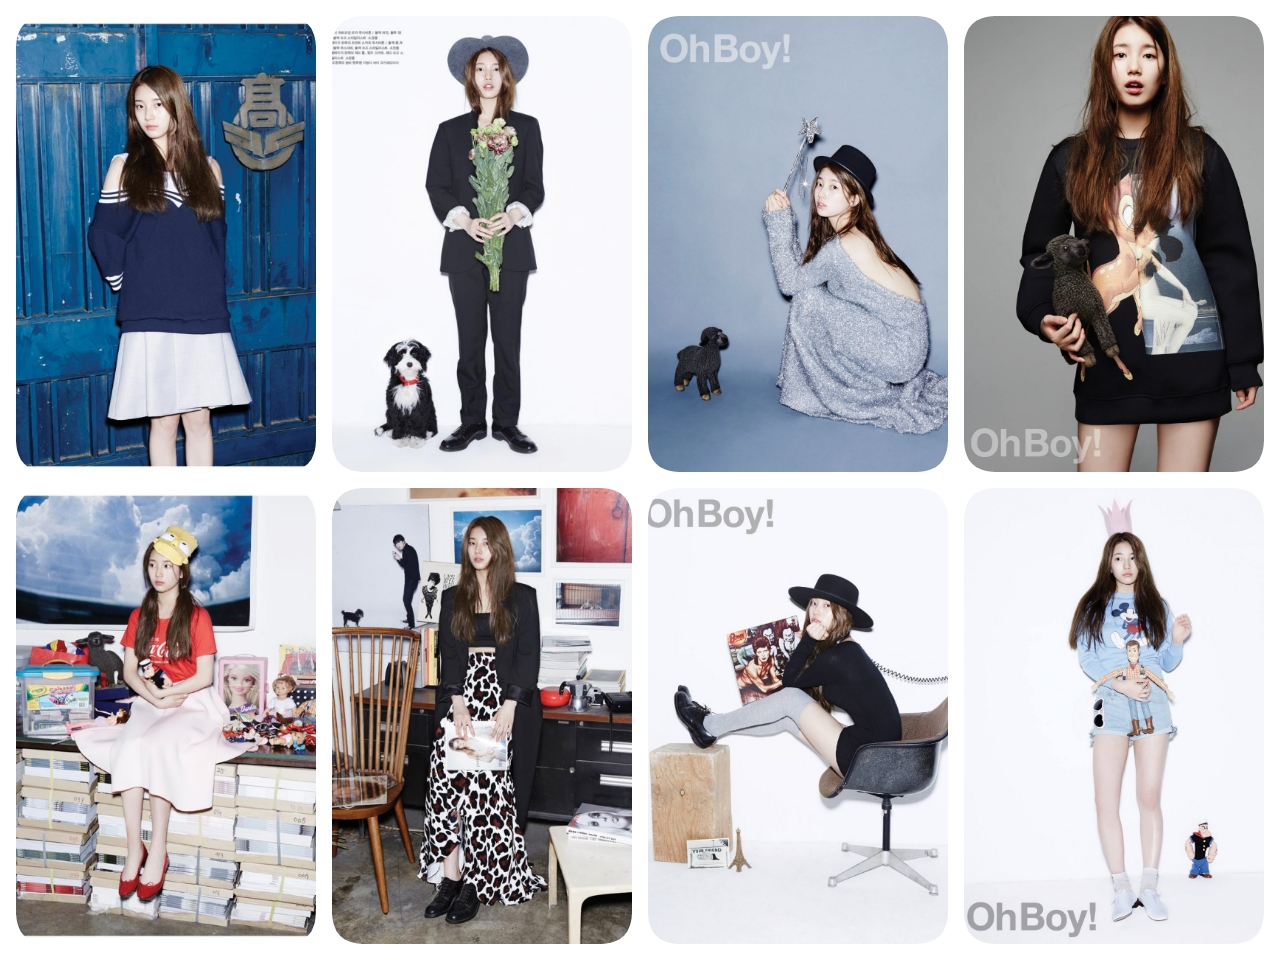 Miss A Suzy - Oh Boy! Magazine Vol.4802